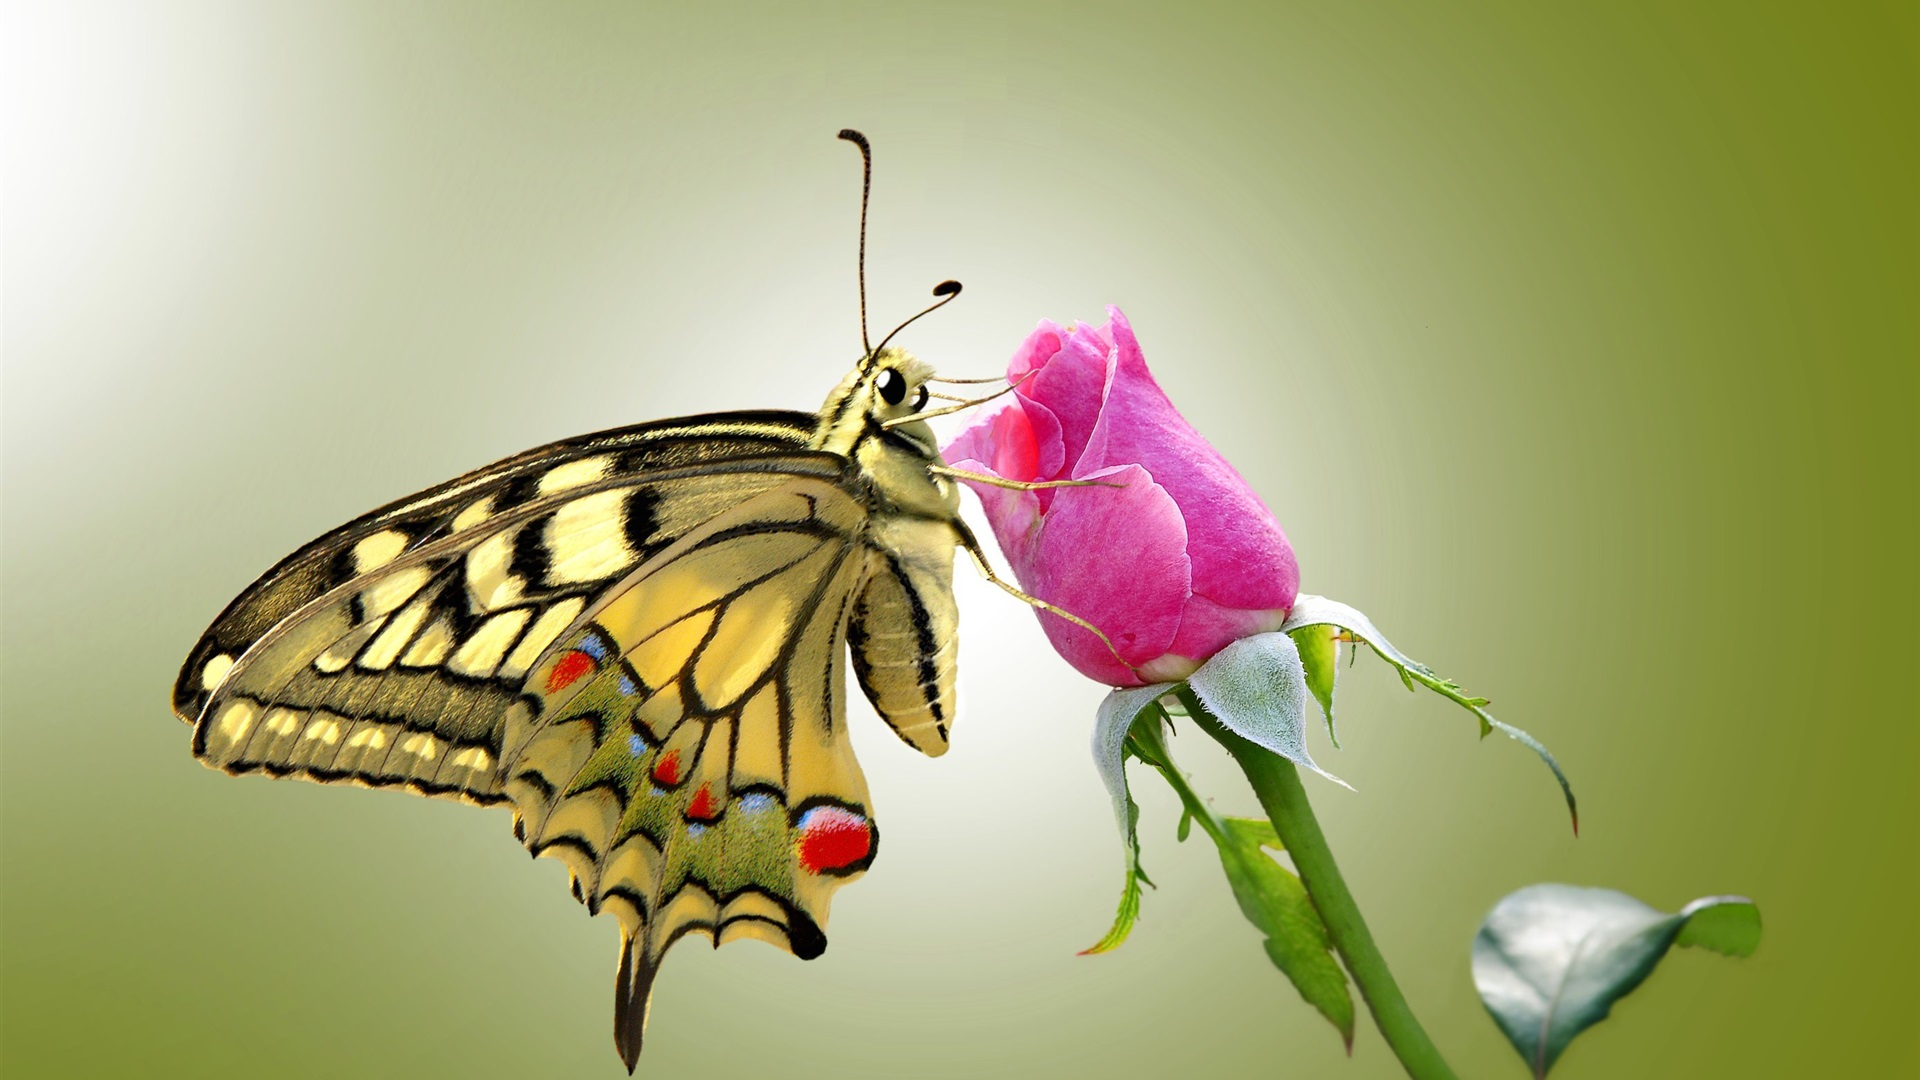 Butterfly and pink rose wallpaper 1920x1080 Full HD